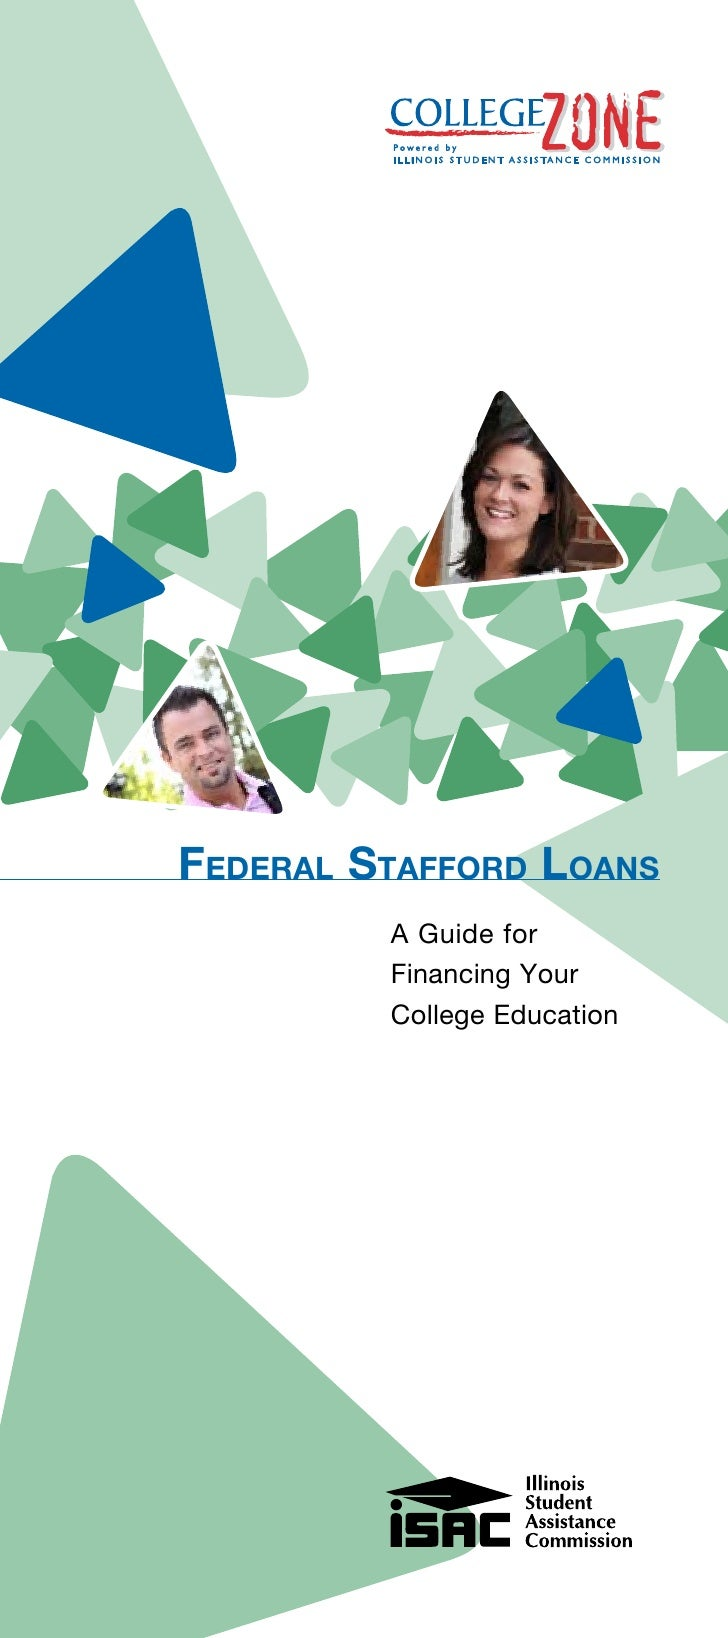 Federal StaFFord loanS          A Guide for          Financing Your          College Education